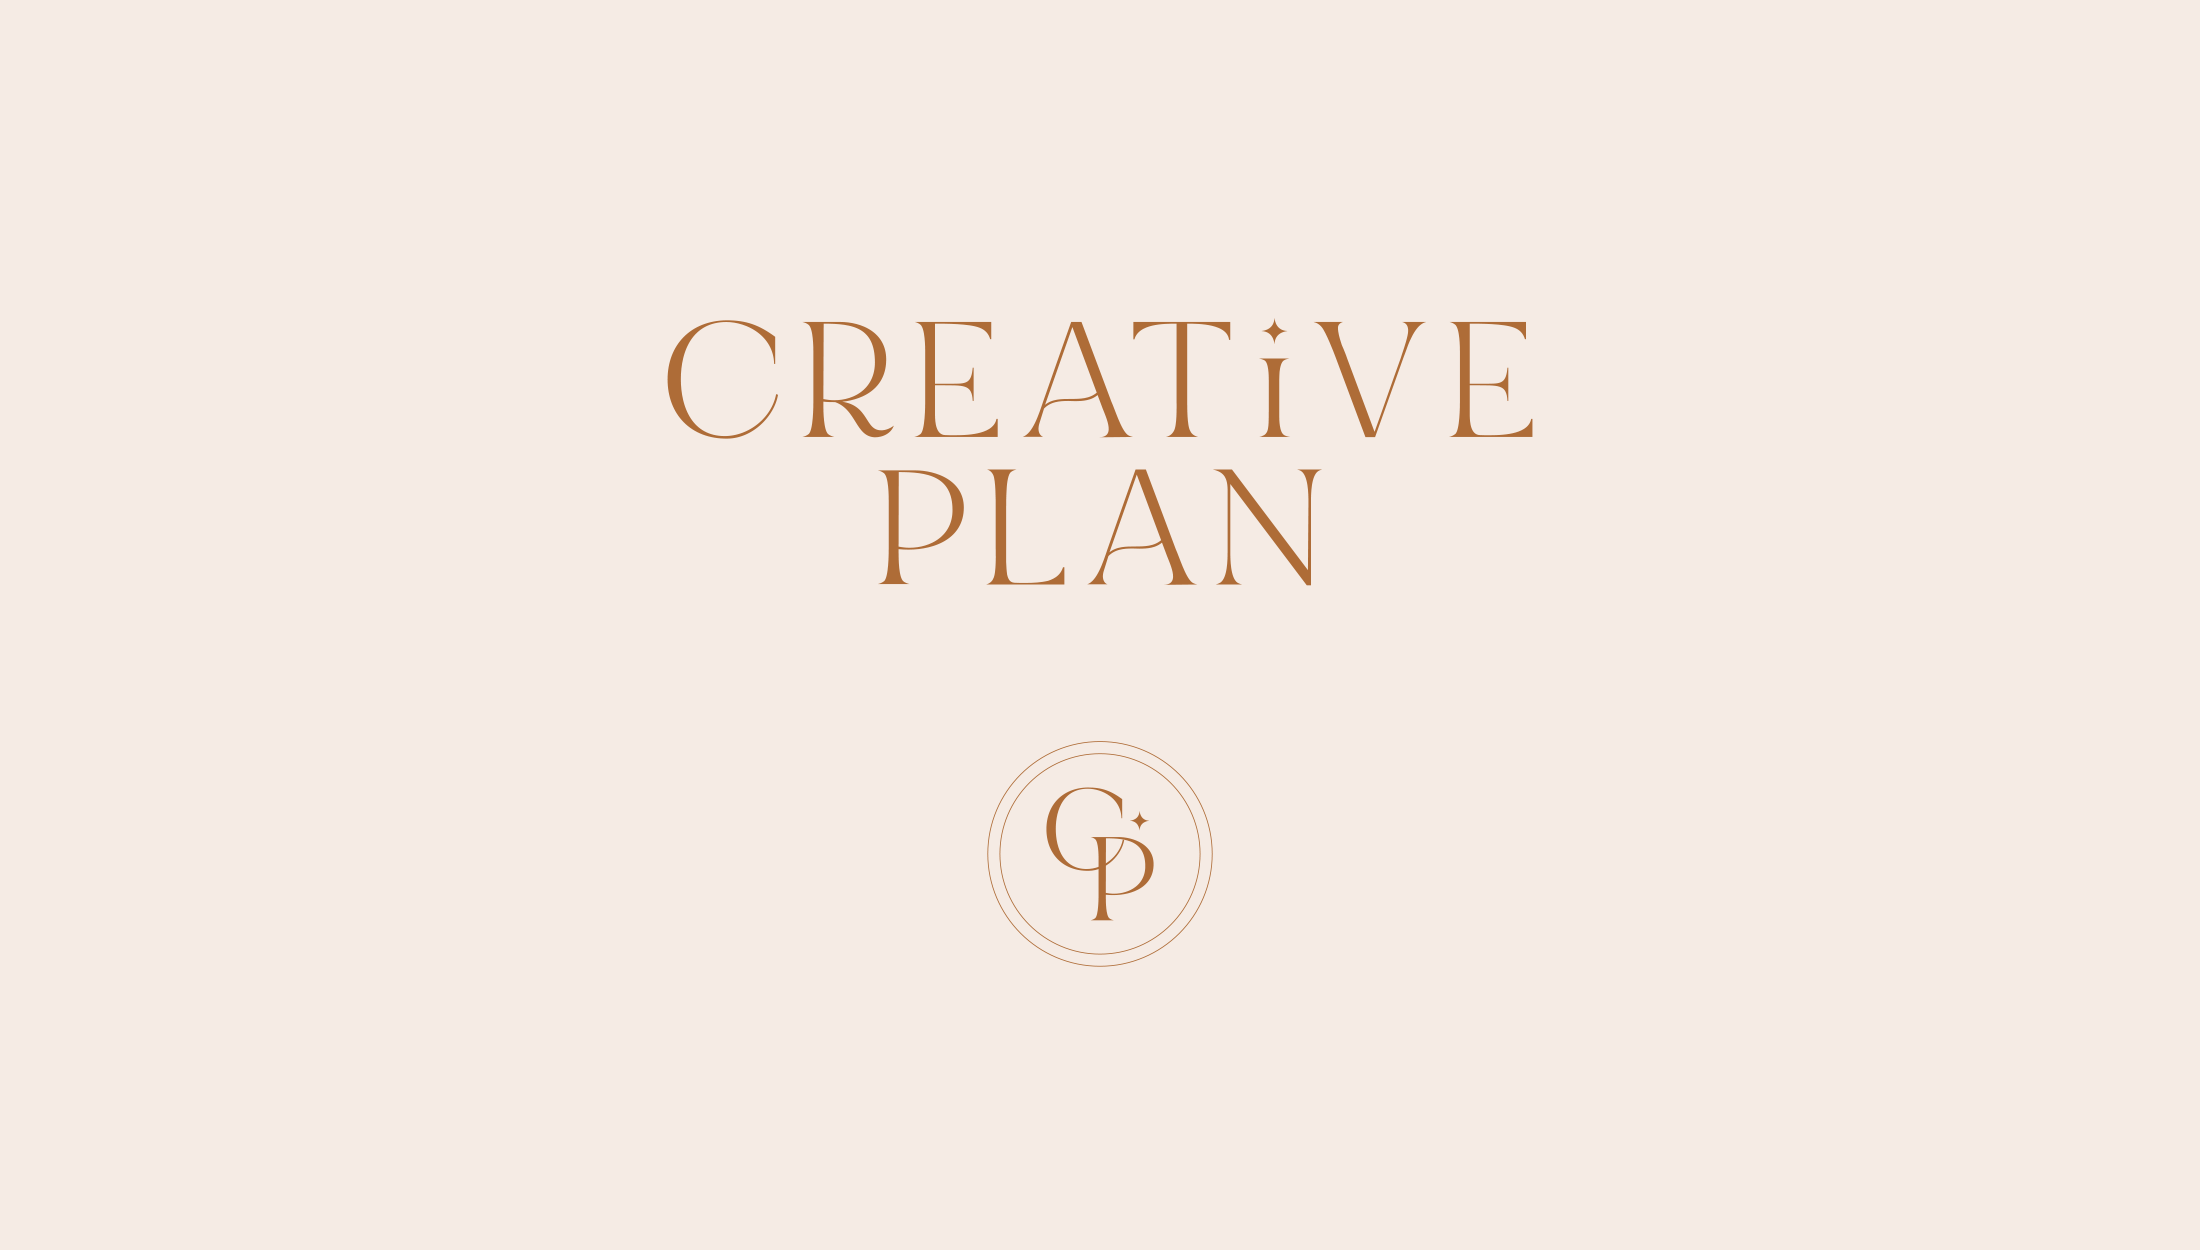 Logo design for Creative Plan, providing paperless planning products with an analogue feel - designed by Wiltshire-based graphic designer, Kaye Huett